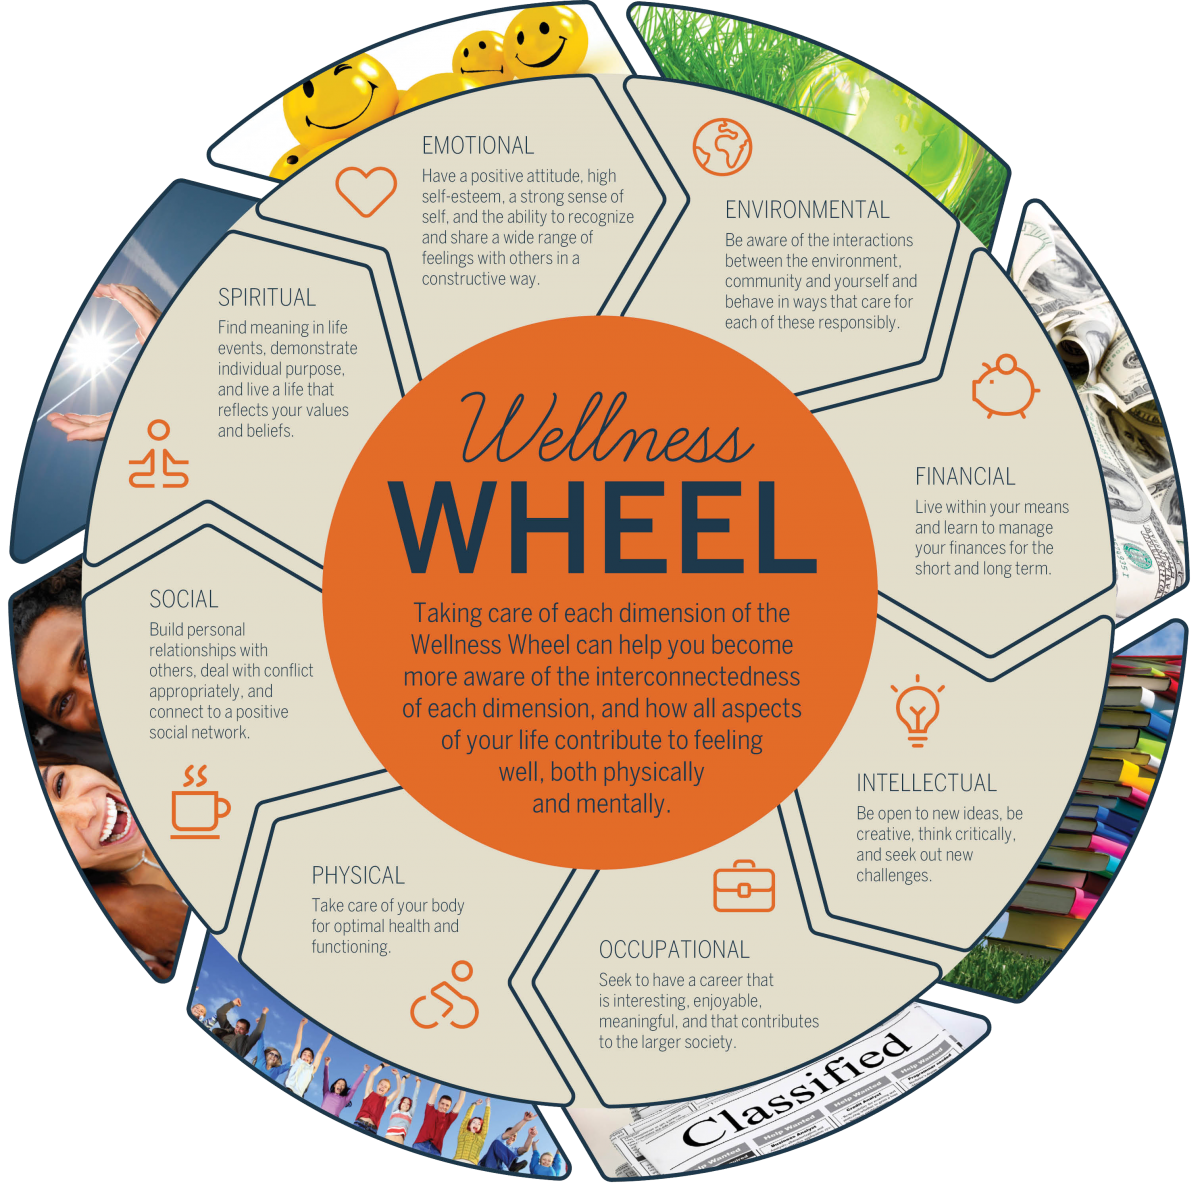 Thread Wellness Wheel For Your Review Use As A Guide And Make Sure To Take Care Of Each